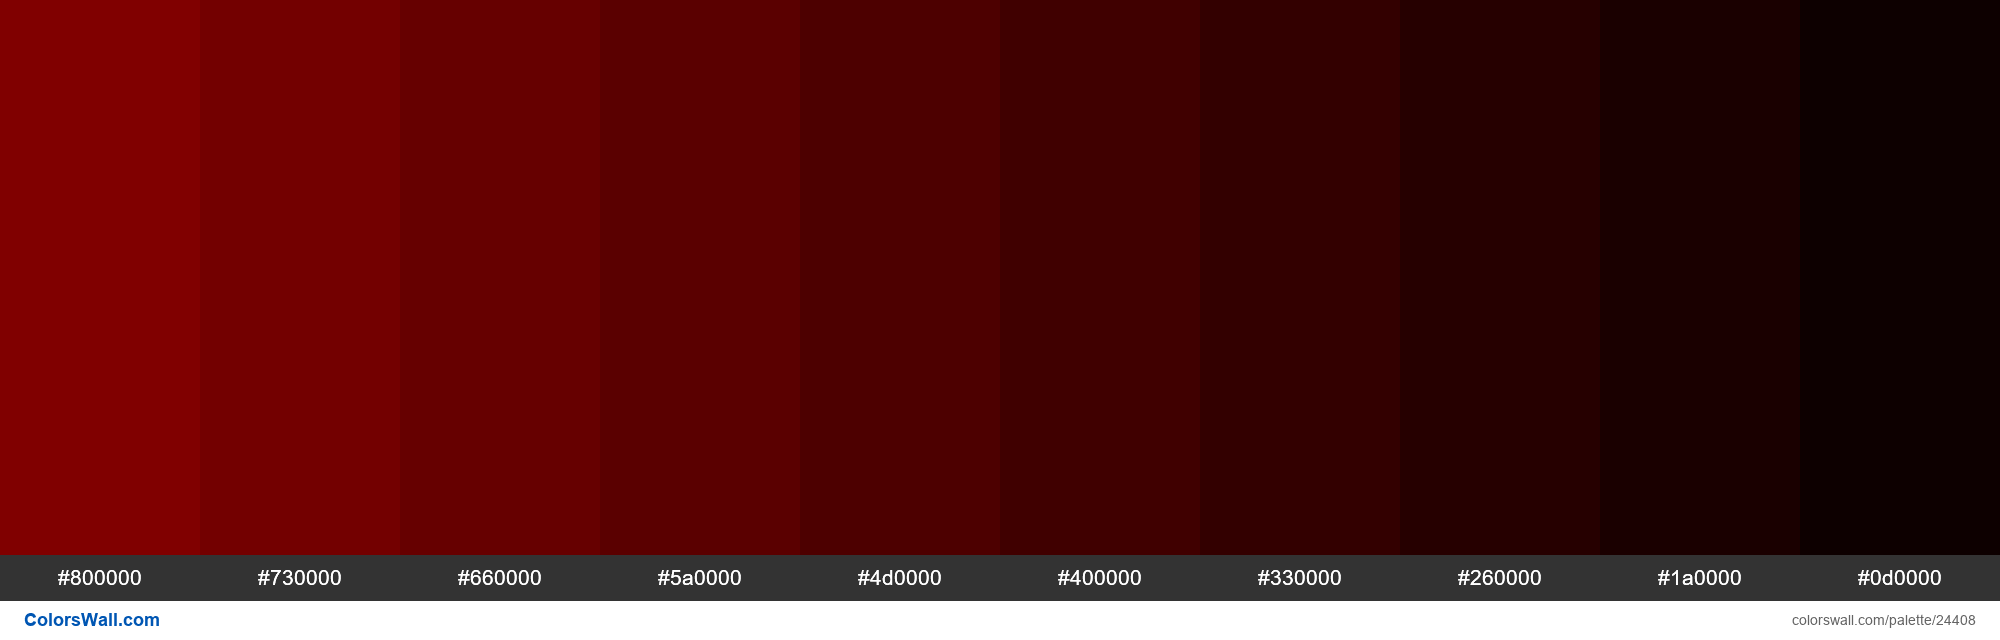 Shades of Maroon #800000 hex color - #24408